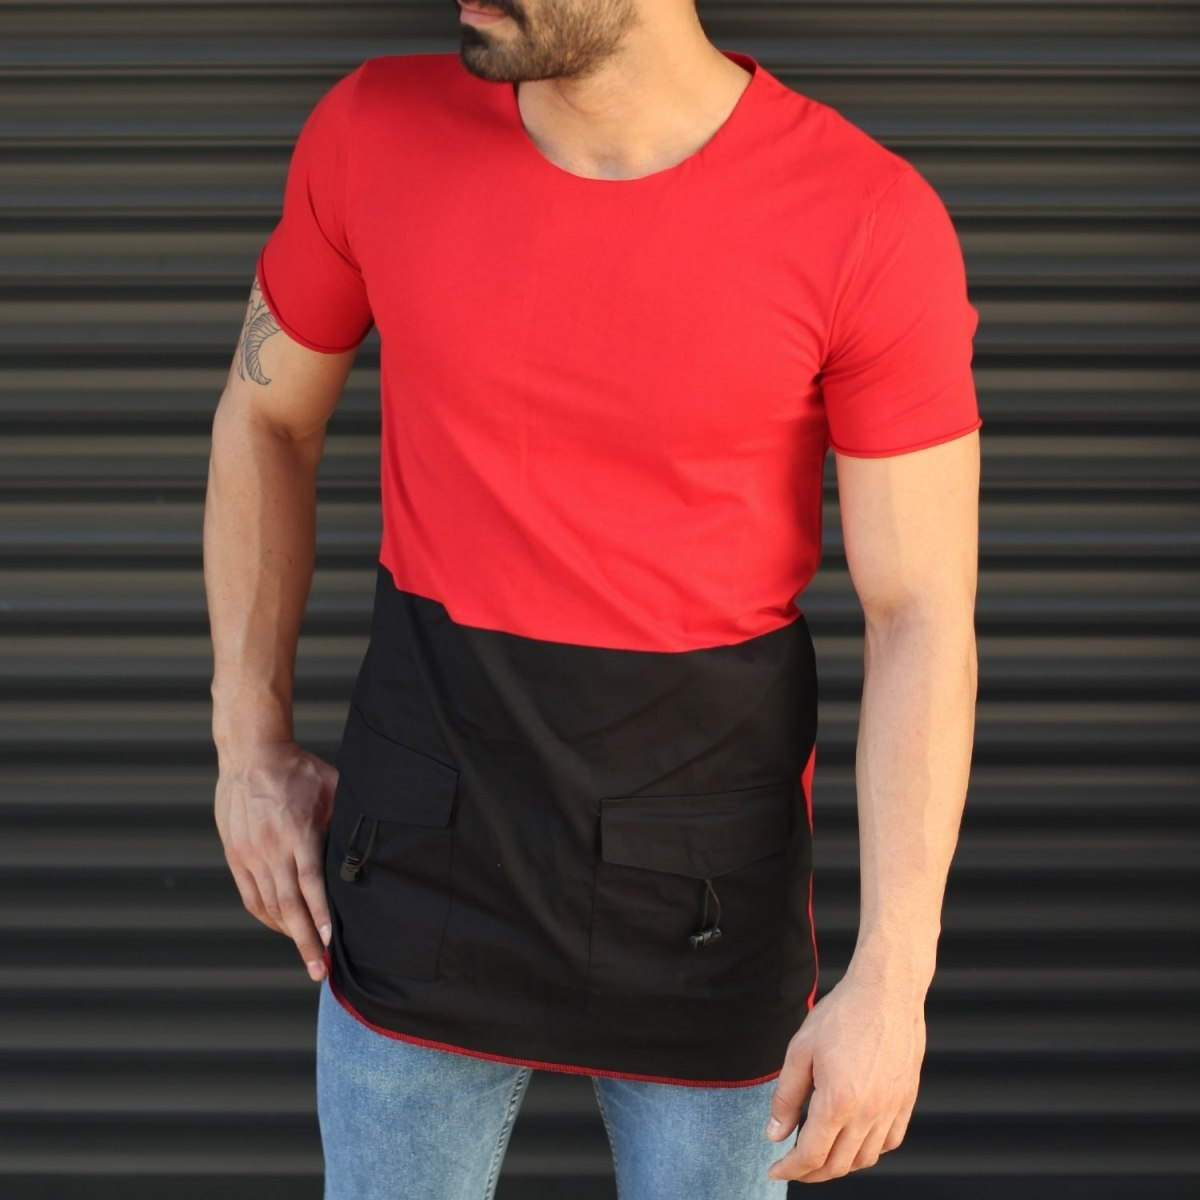 Men's Pieced Longline Crew Neck T-Shirt In Red Mv Premium Brand - 1